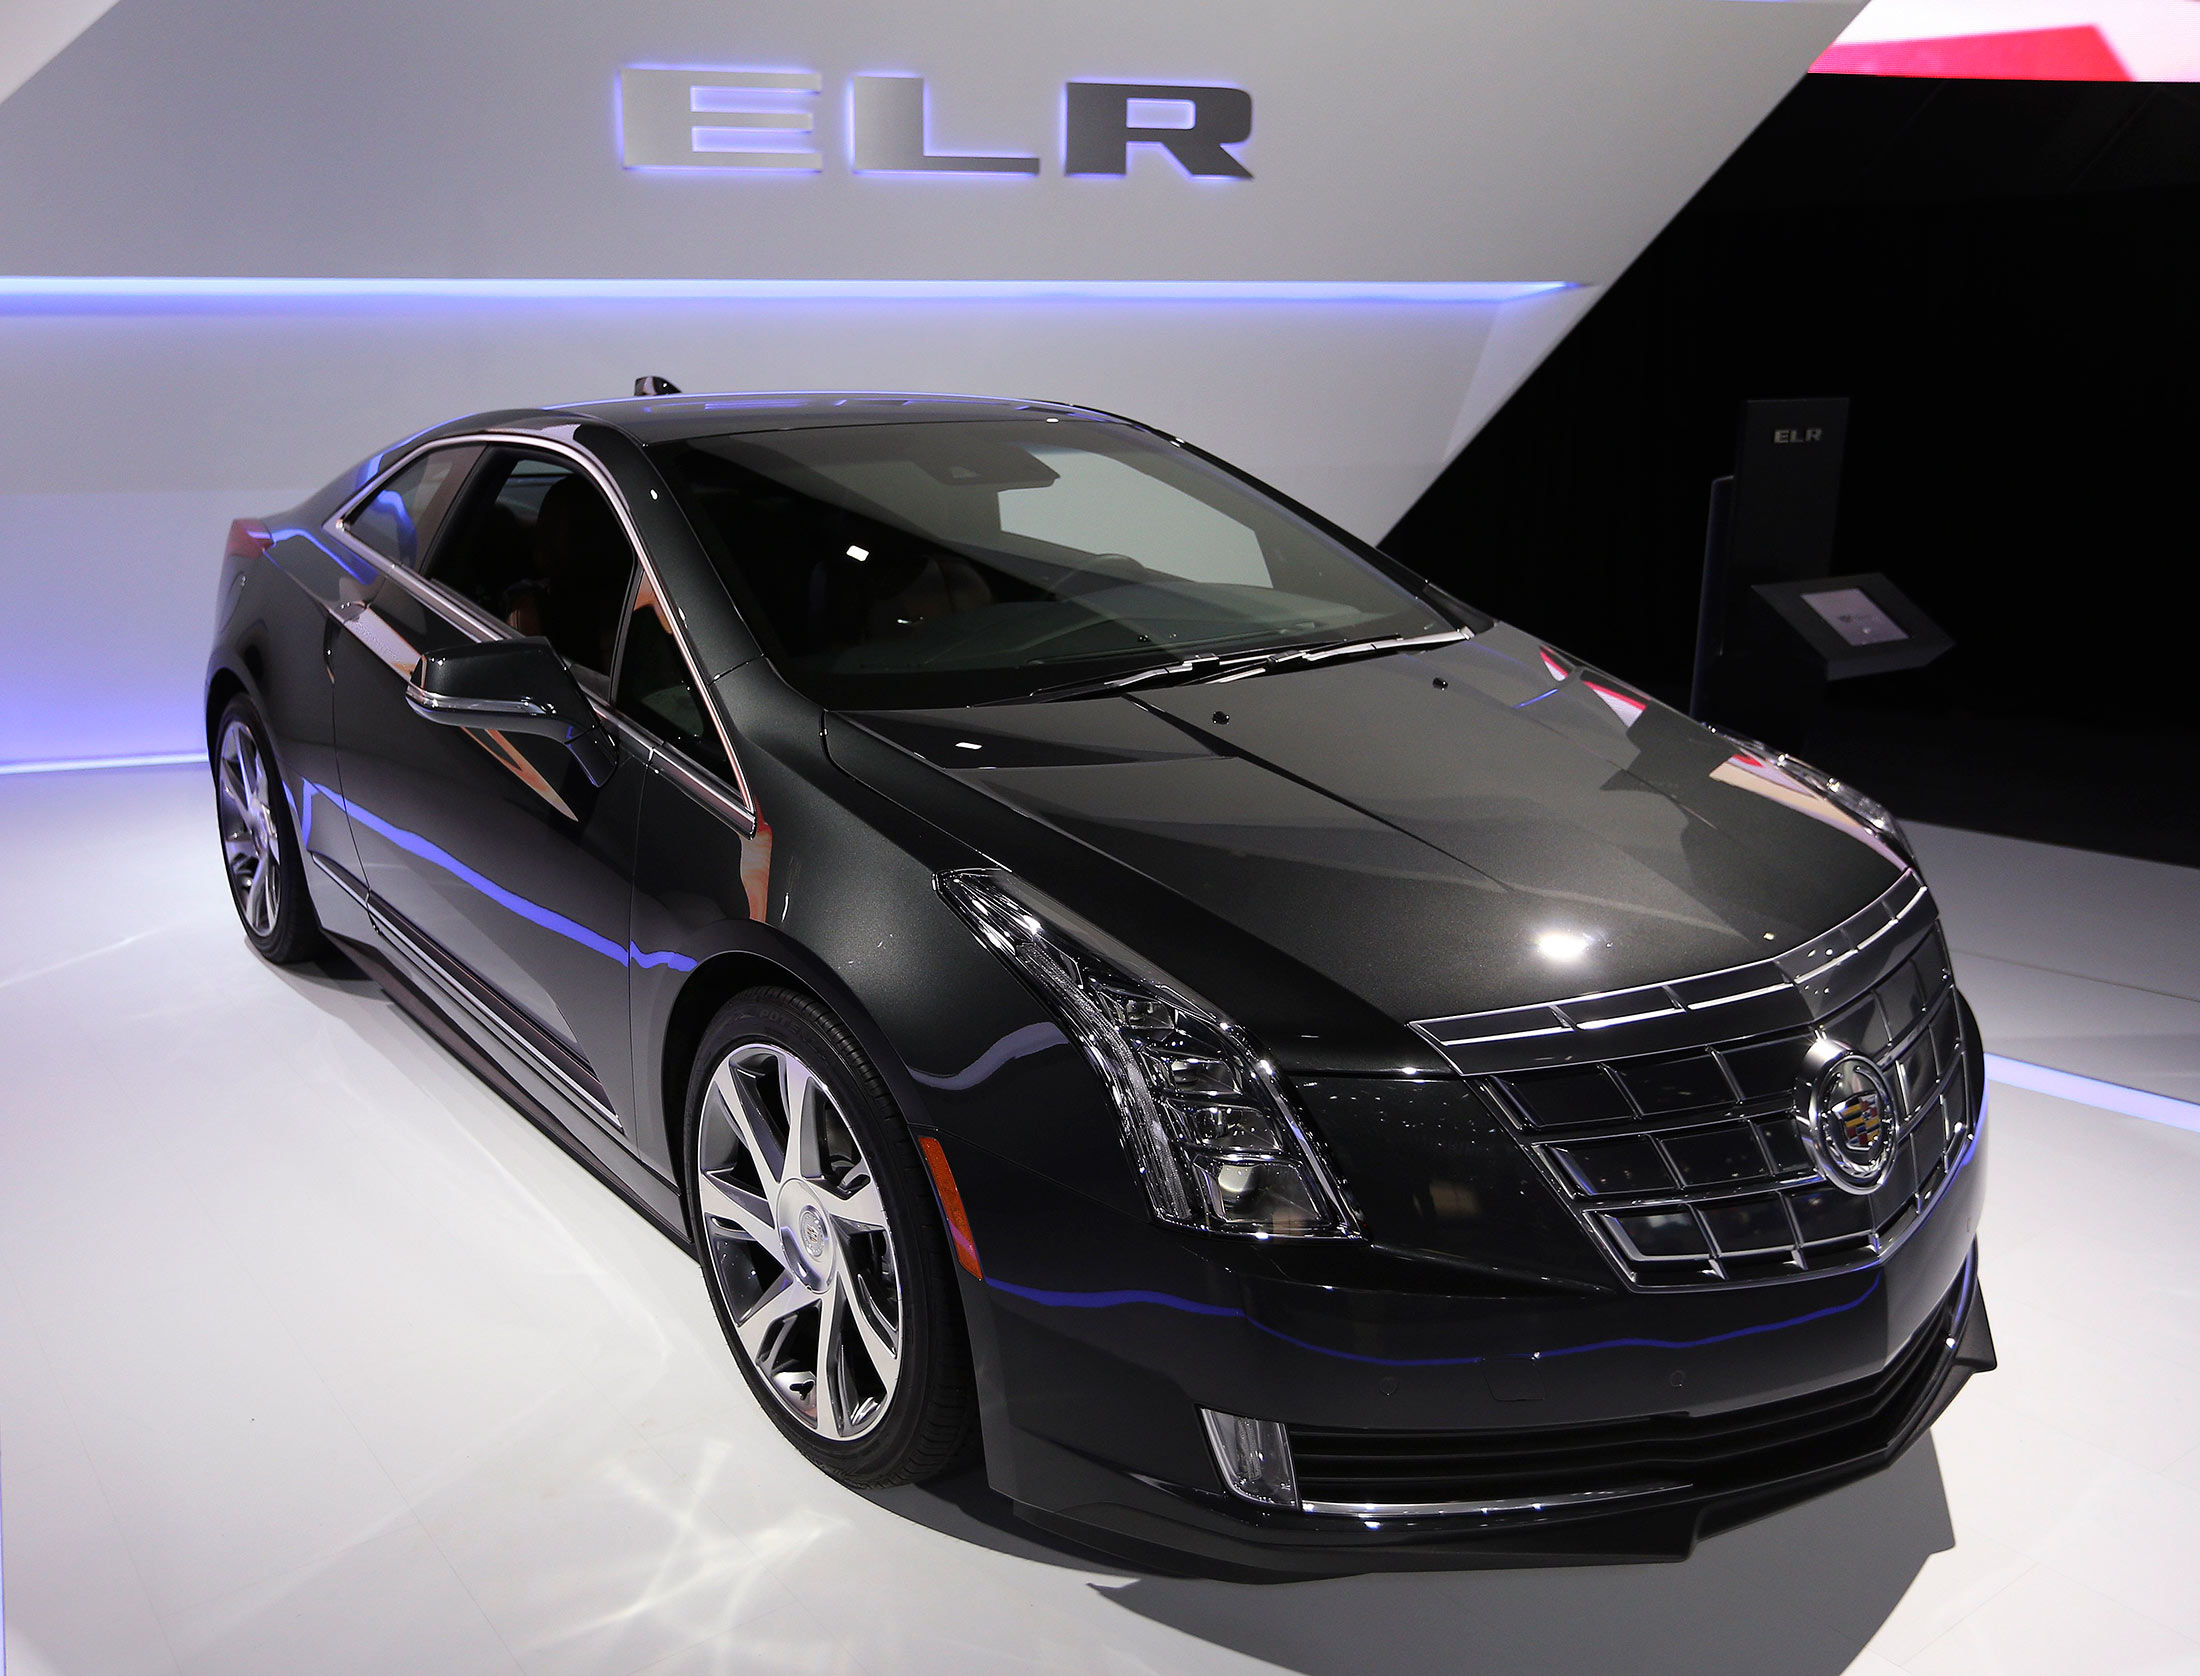 Cadillac ELR Coupe: A Shrinking Price on an Unloved Electric